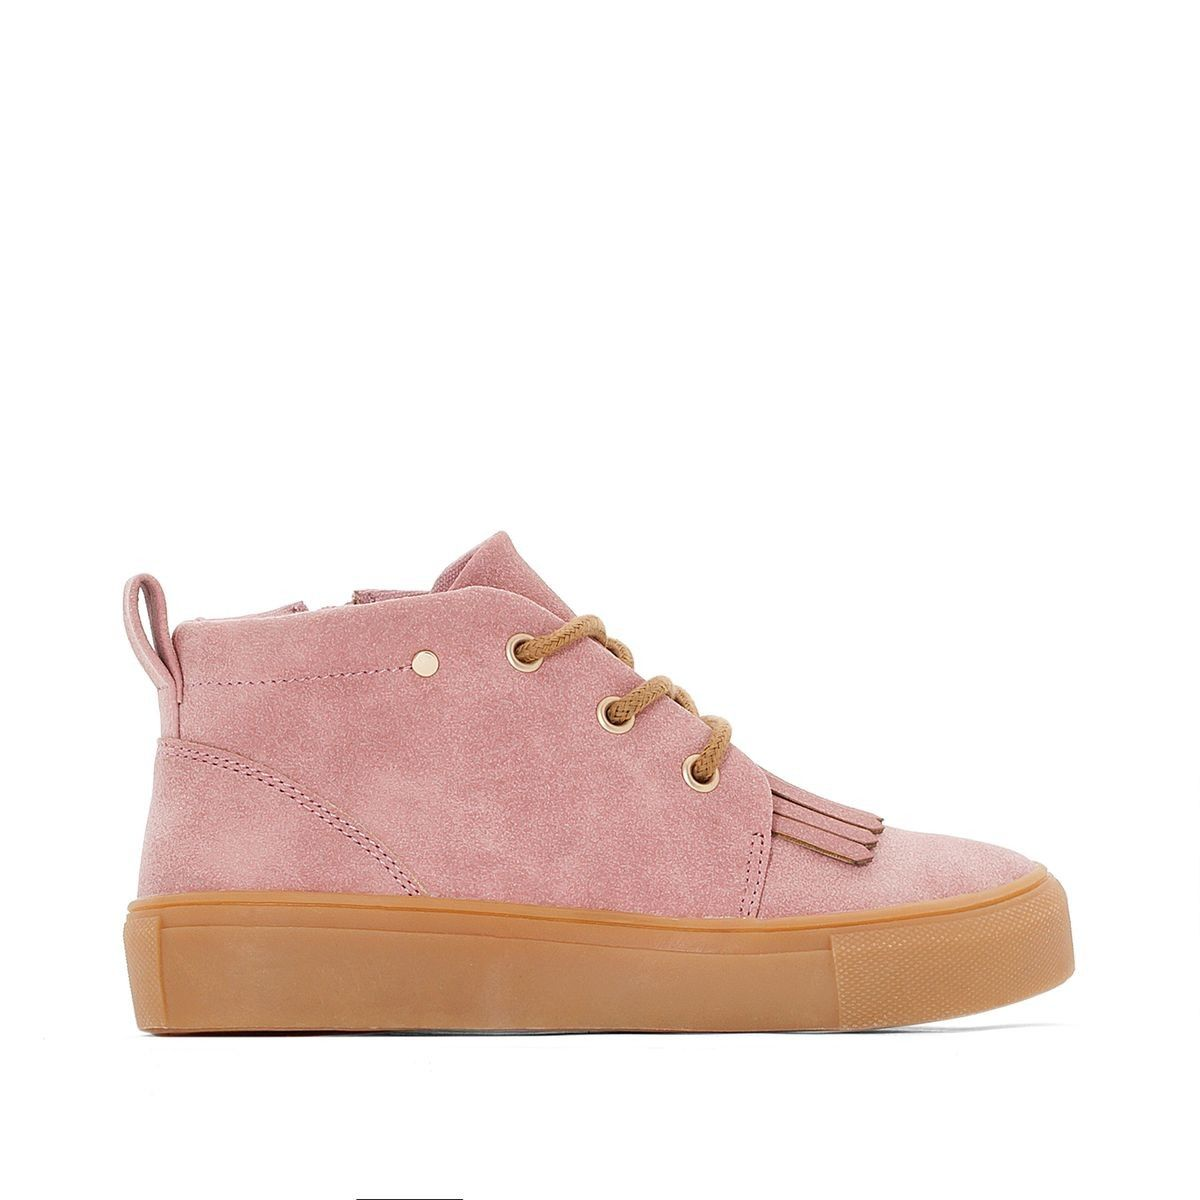 Baskets Taille 26 Mexicaine Patte 39 30;26;27;29;31;32;33;35;37 qnBFTO